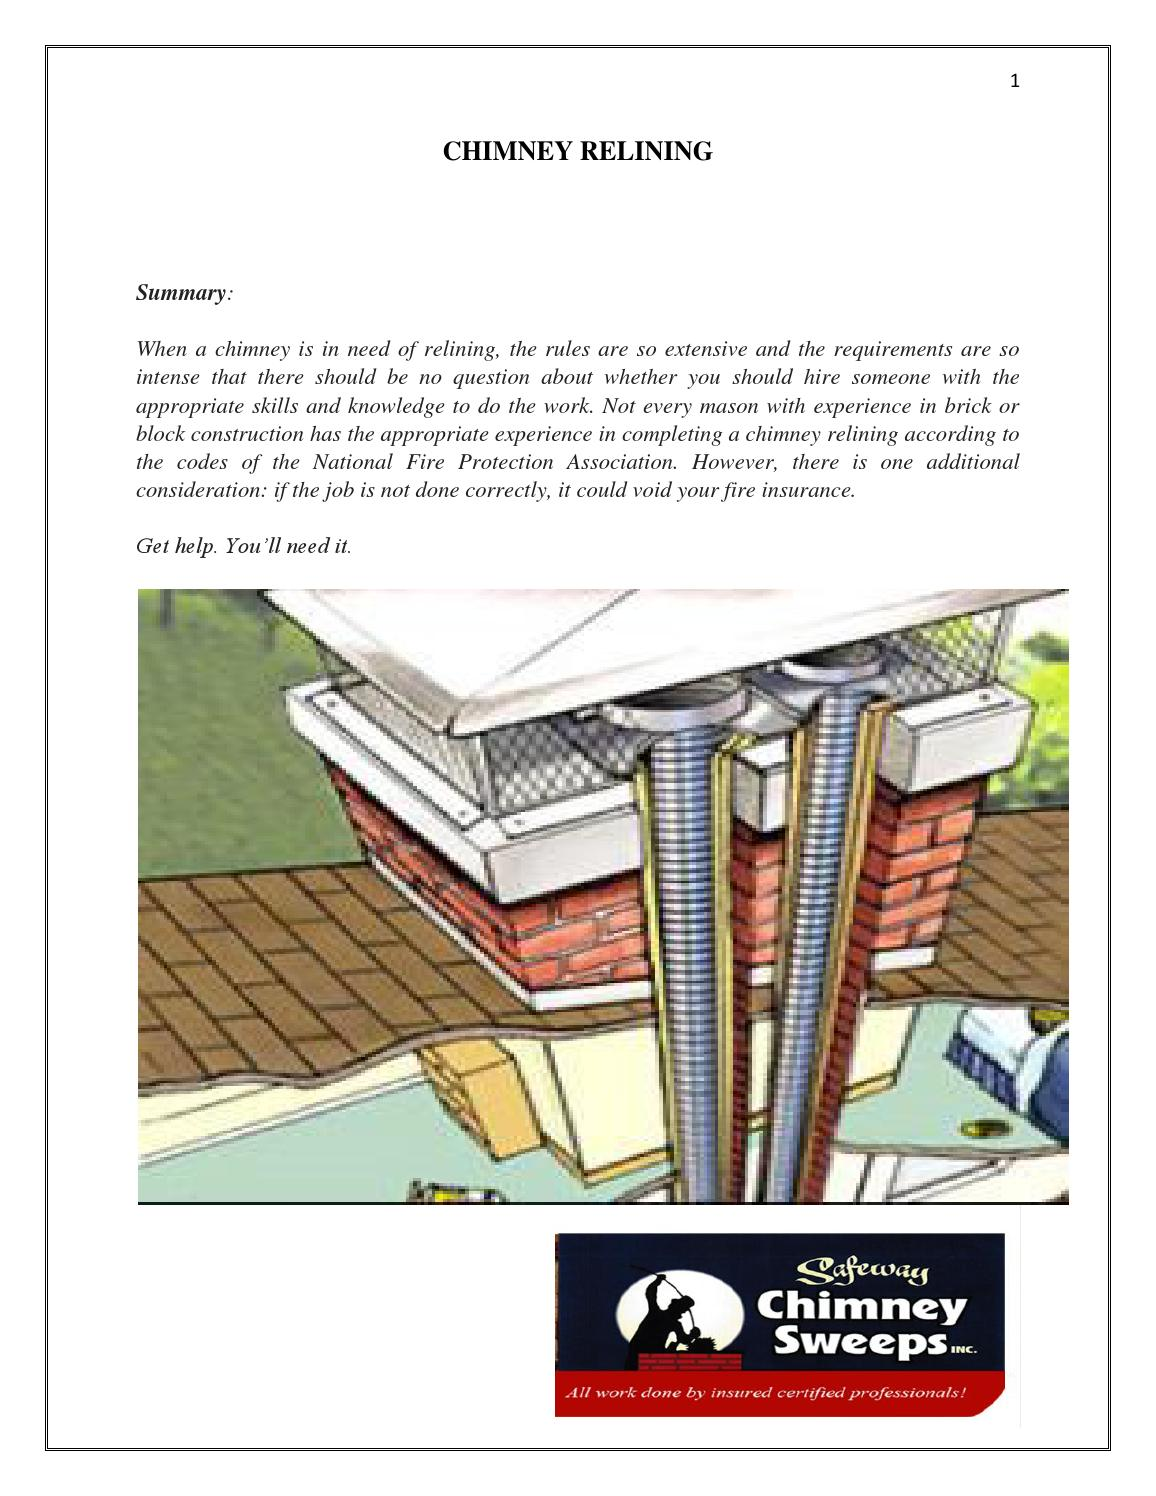 Chimney Relining By Safeway Chimney Sweeps Inc Issuu